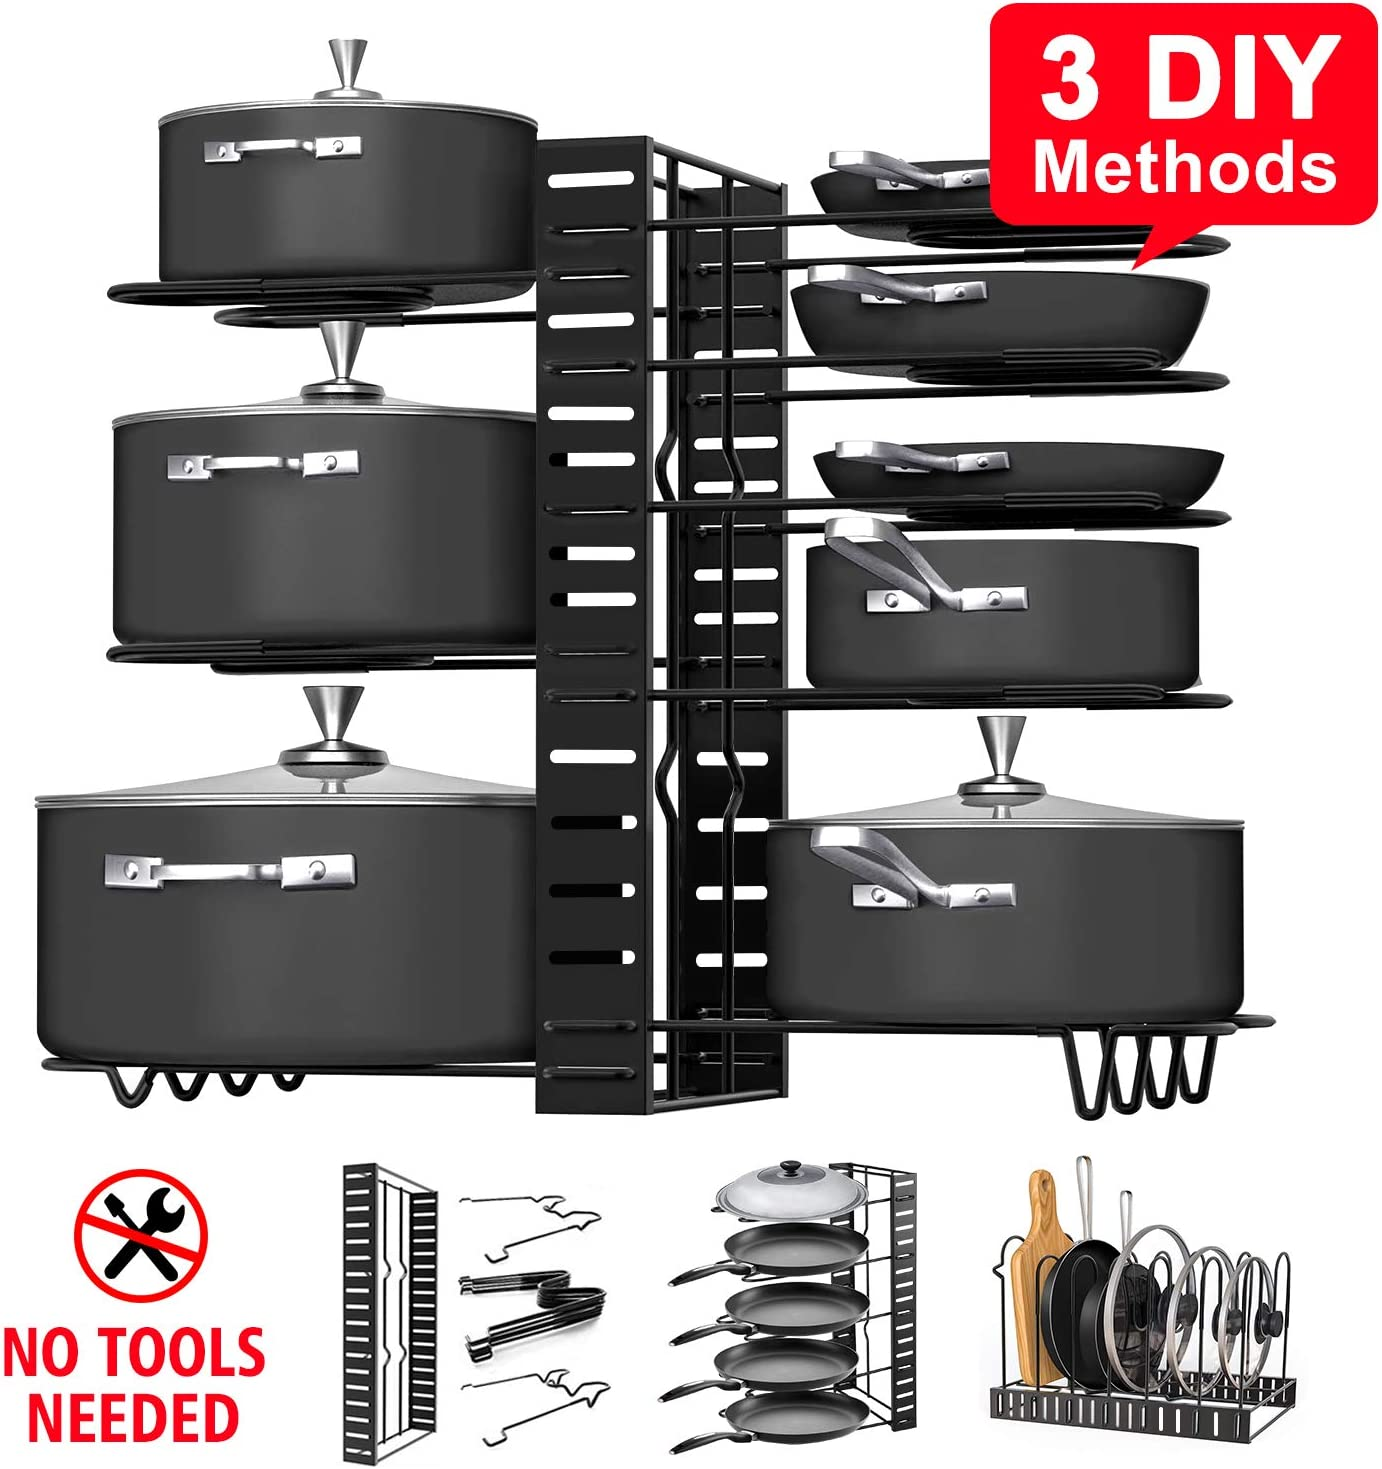 Amazon Com Pot Rack Organizers G Ting 8 Tiers Pots And Pans Organizer Adjustable Pot Lid Holders Pan Rack For Kitchen Counter And Cabinet Lid Organizer For Pots And Pans With 3 Diy